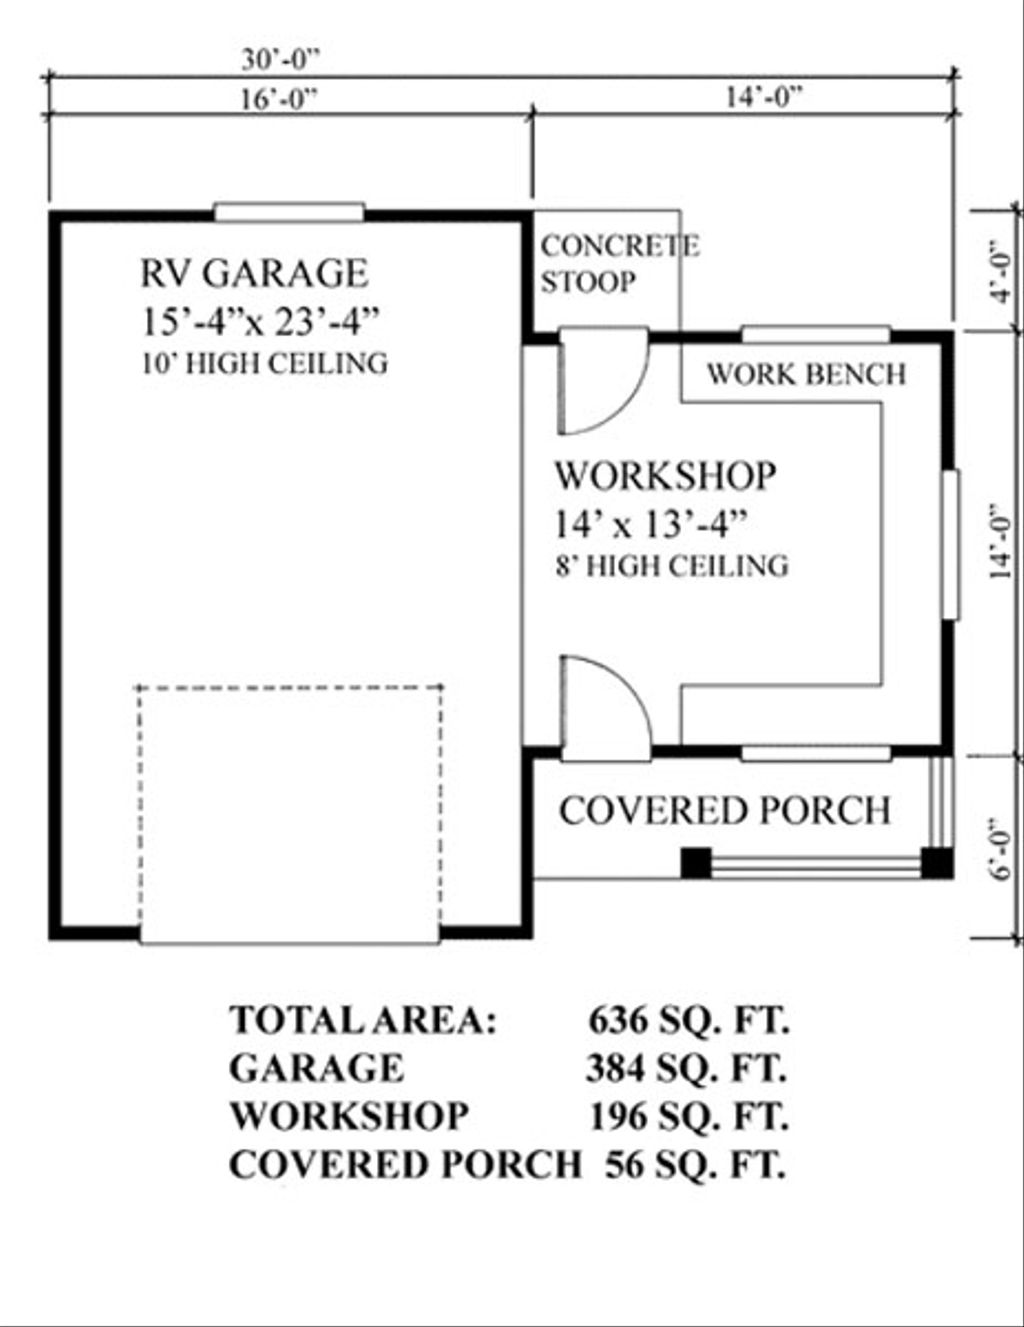 Cottage Style House Plan - 0 Beds 0 Baths 580 Sq/Ft Plan